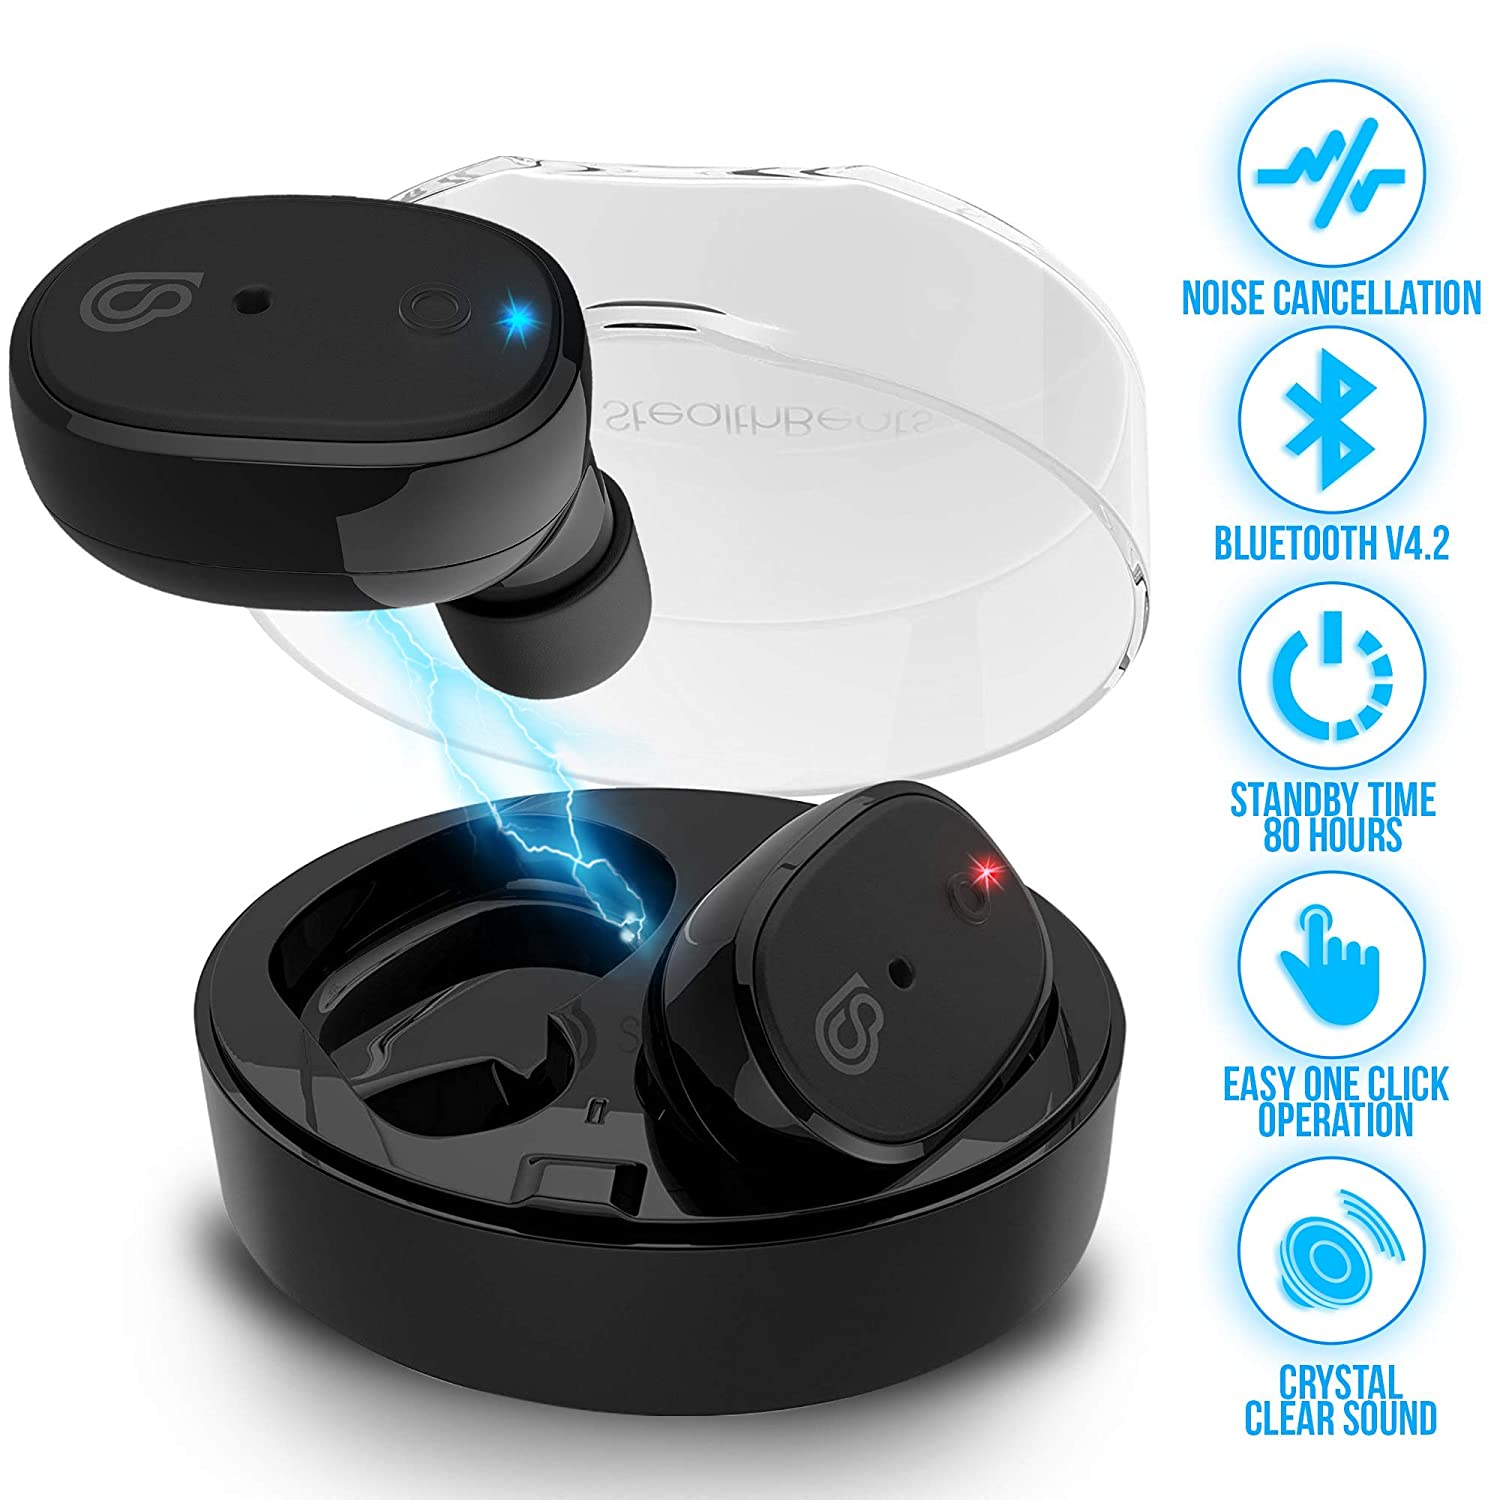 839395ca7bb Amazon.com: StealthBeats Bluetooth Wireless Headphones with Microphone  [INVISIBLE EARPHONES] Running Earbuds with Dock Charger - Noise  Cancellation, ...